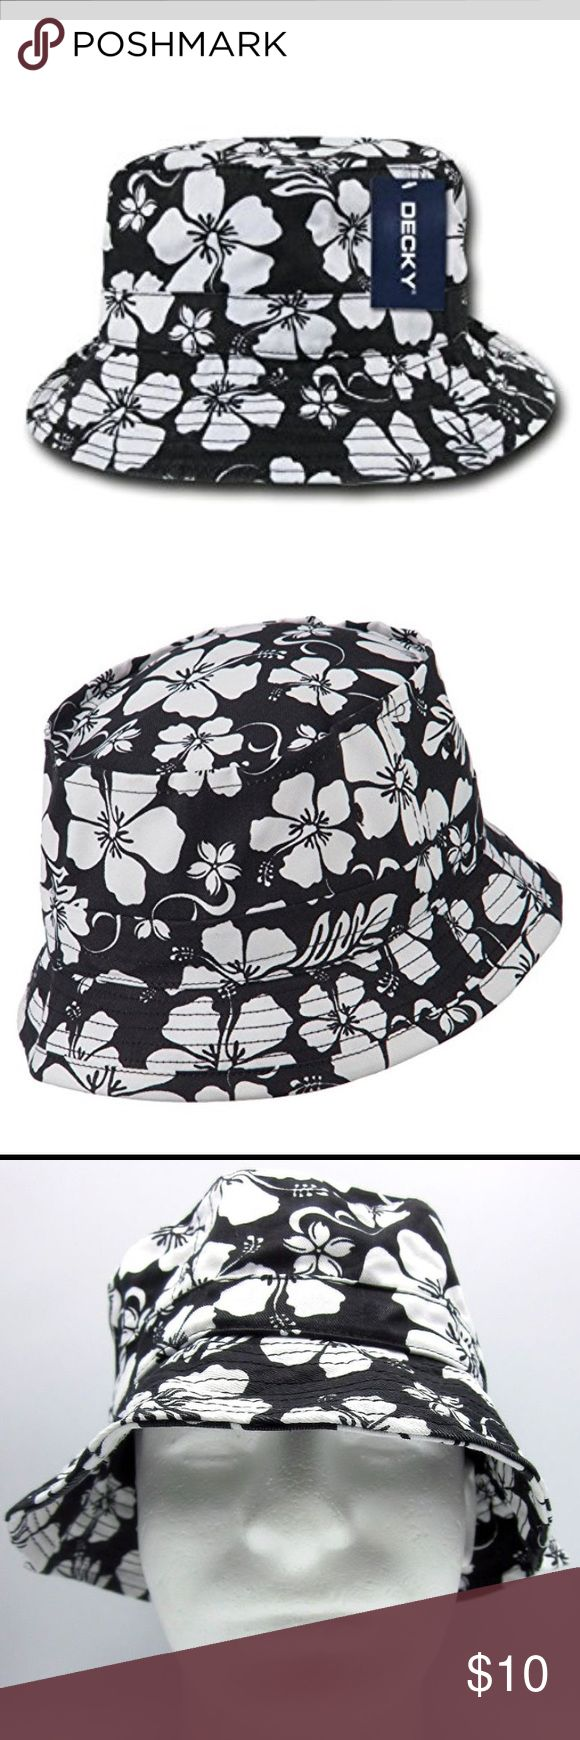 Floral Bucket Hat Cute Black and White Floral Bucket Hat. Great for the beach. Size Small/Medium, NWT Decky Accessories Hats